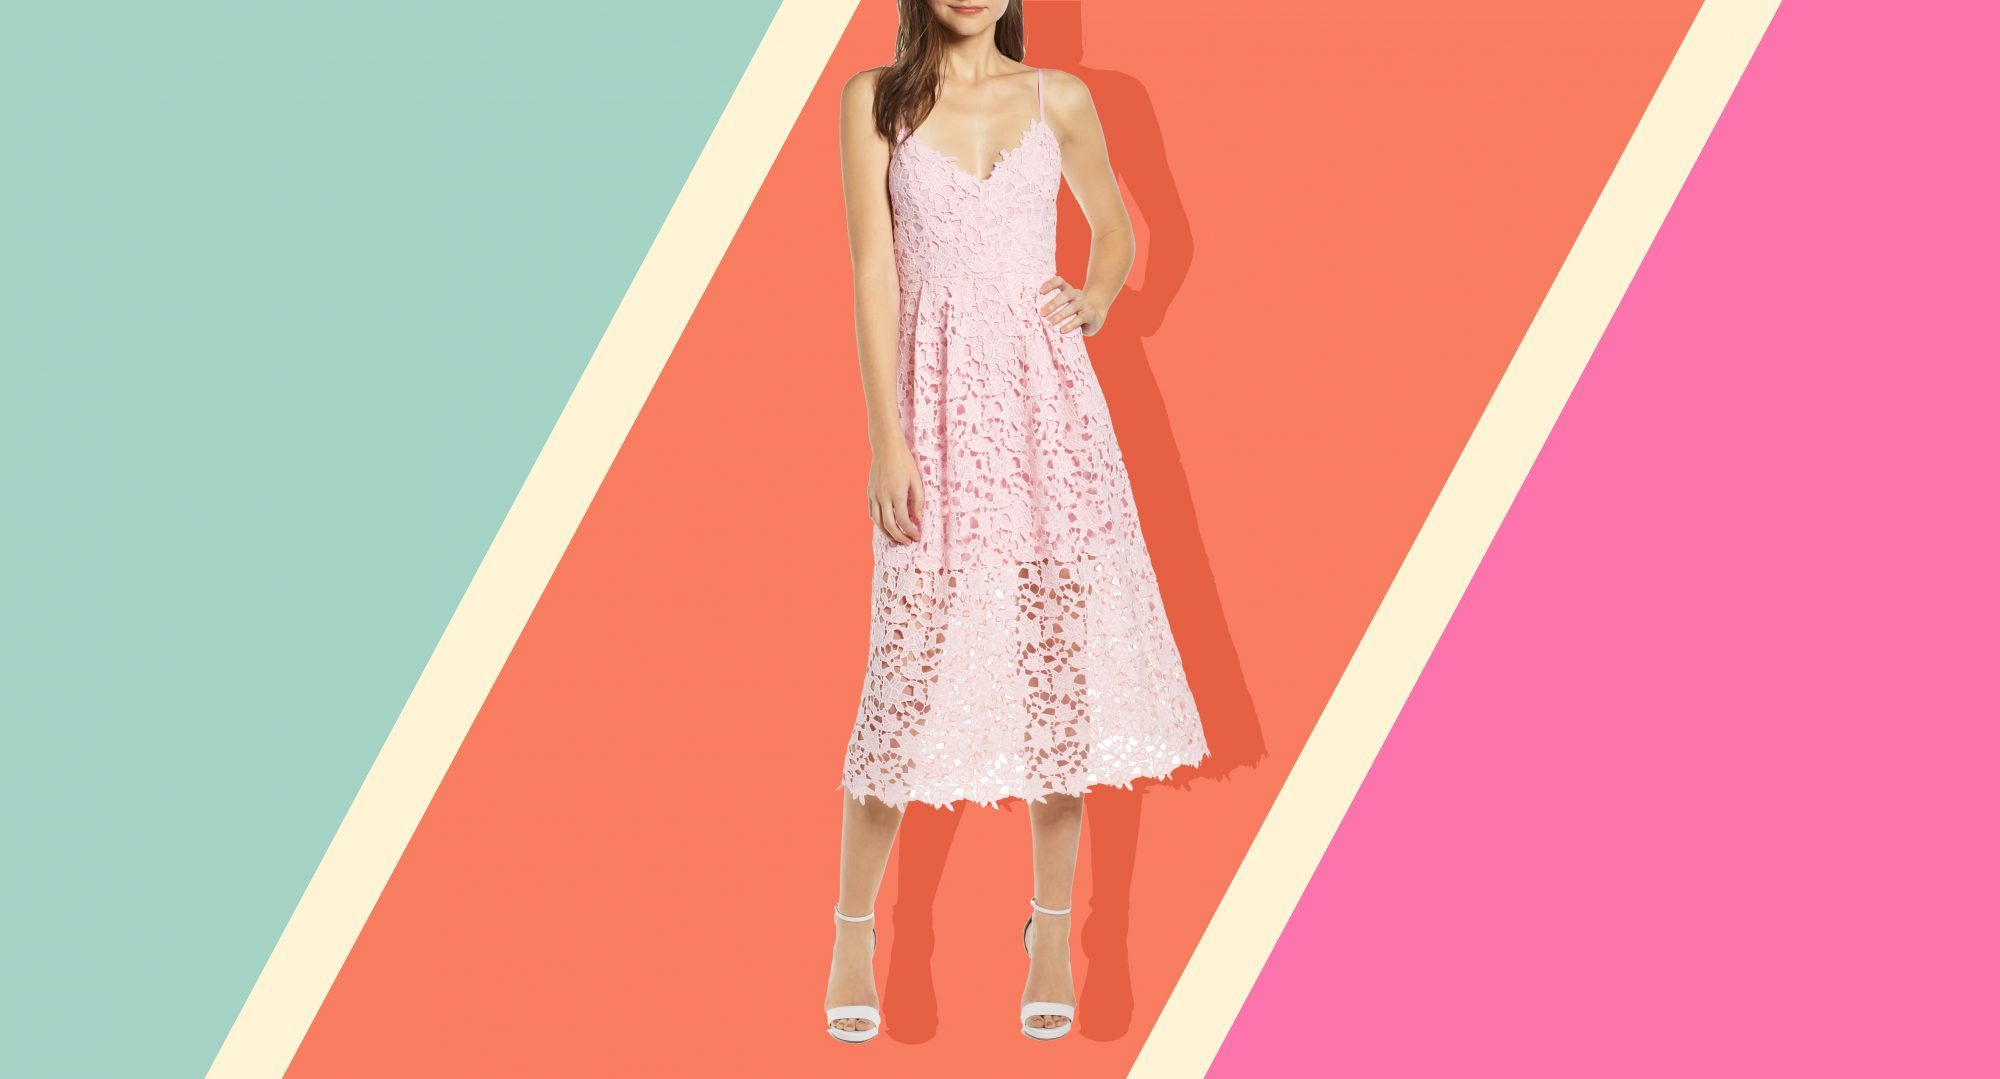 7 Versatile Wedding Guest Dresses You Can Wear Over and Over Again